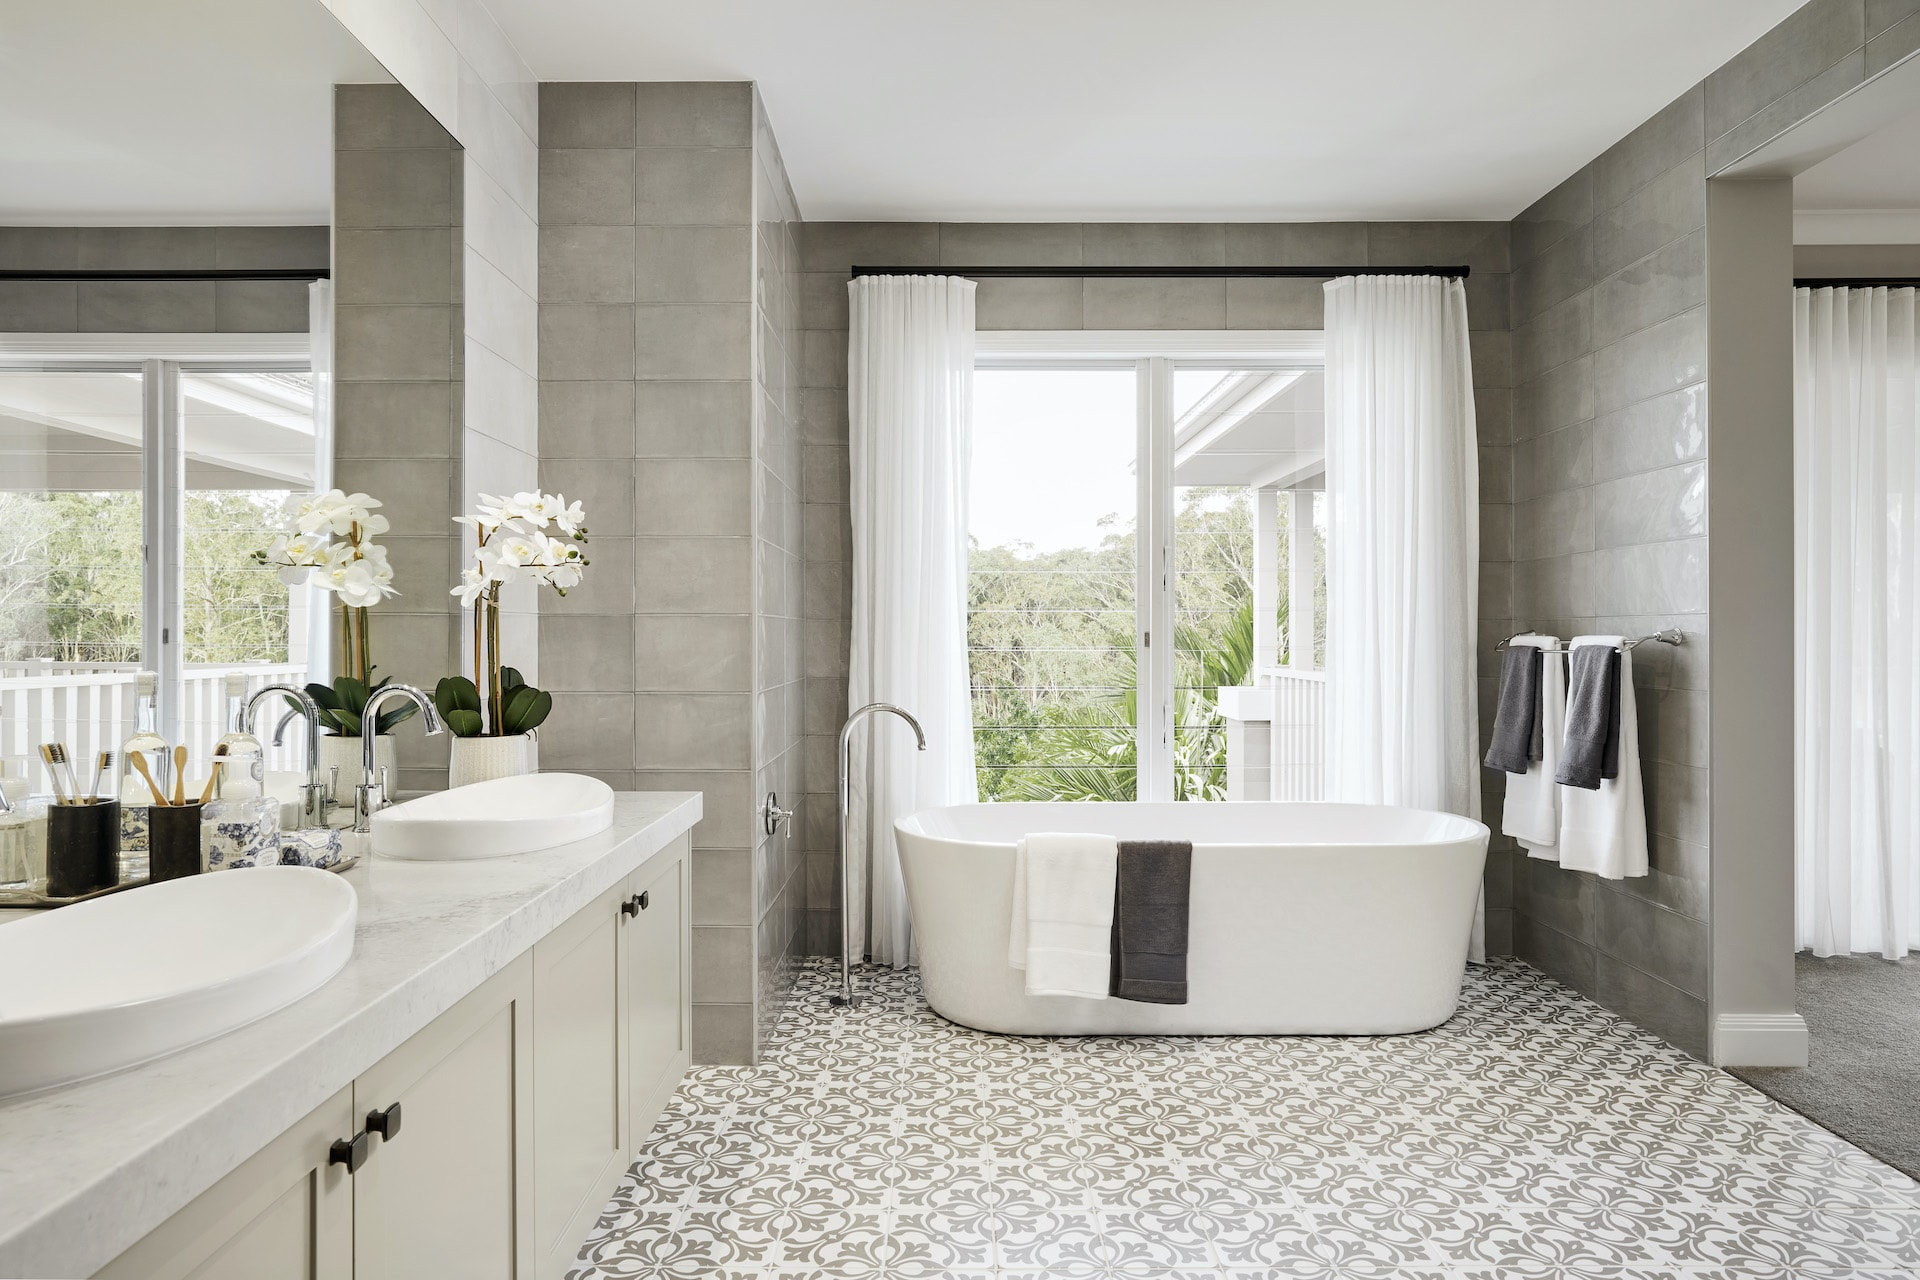 grey gloss bathroom wall tiles with patterned bathroom floor tiles provincial style